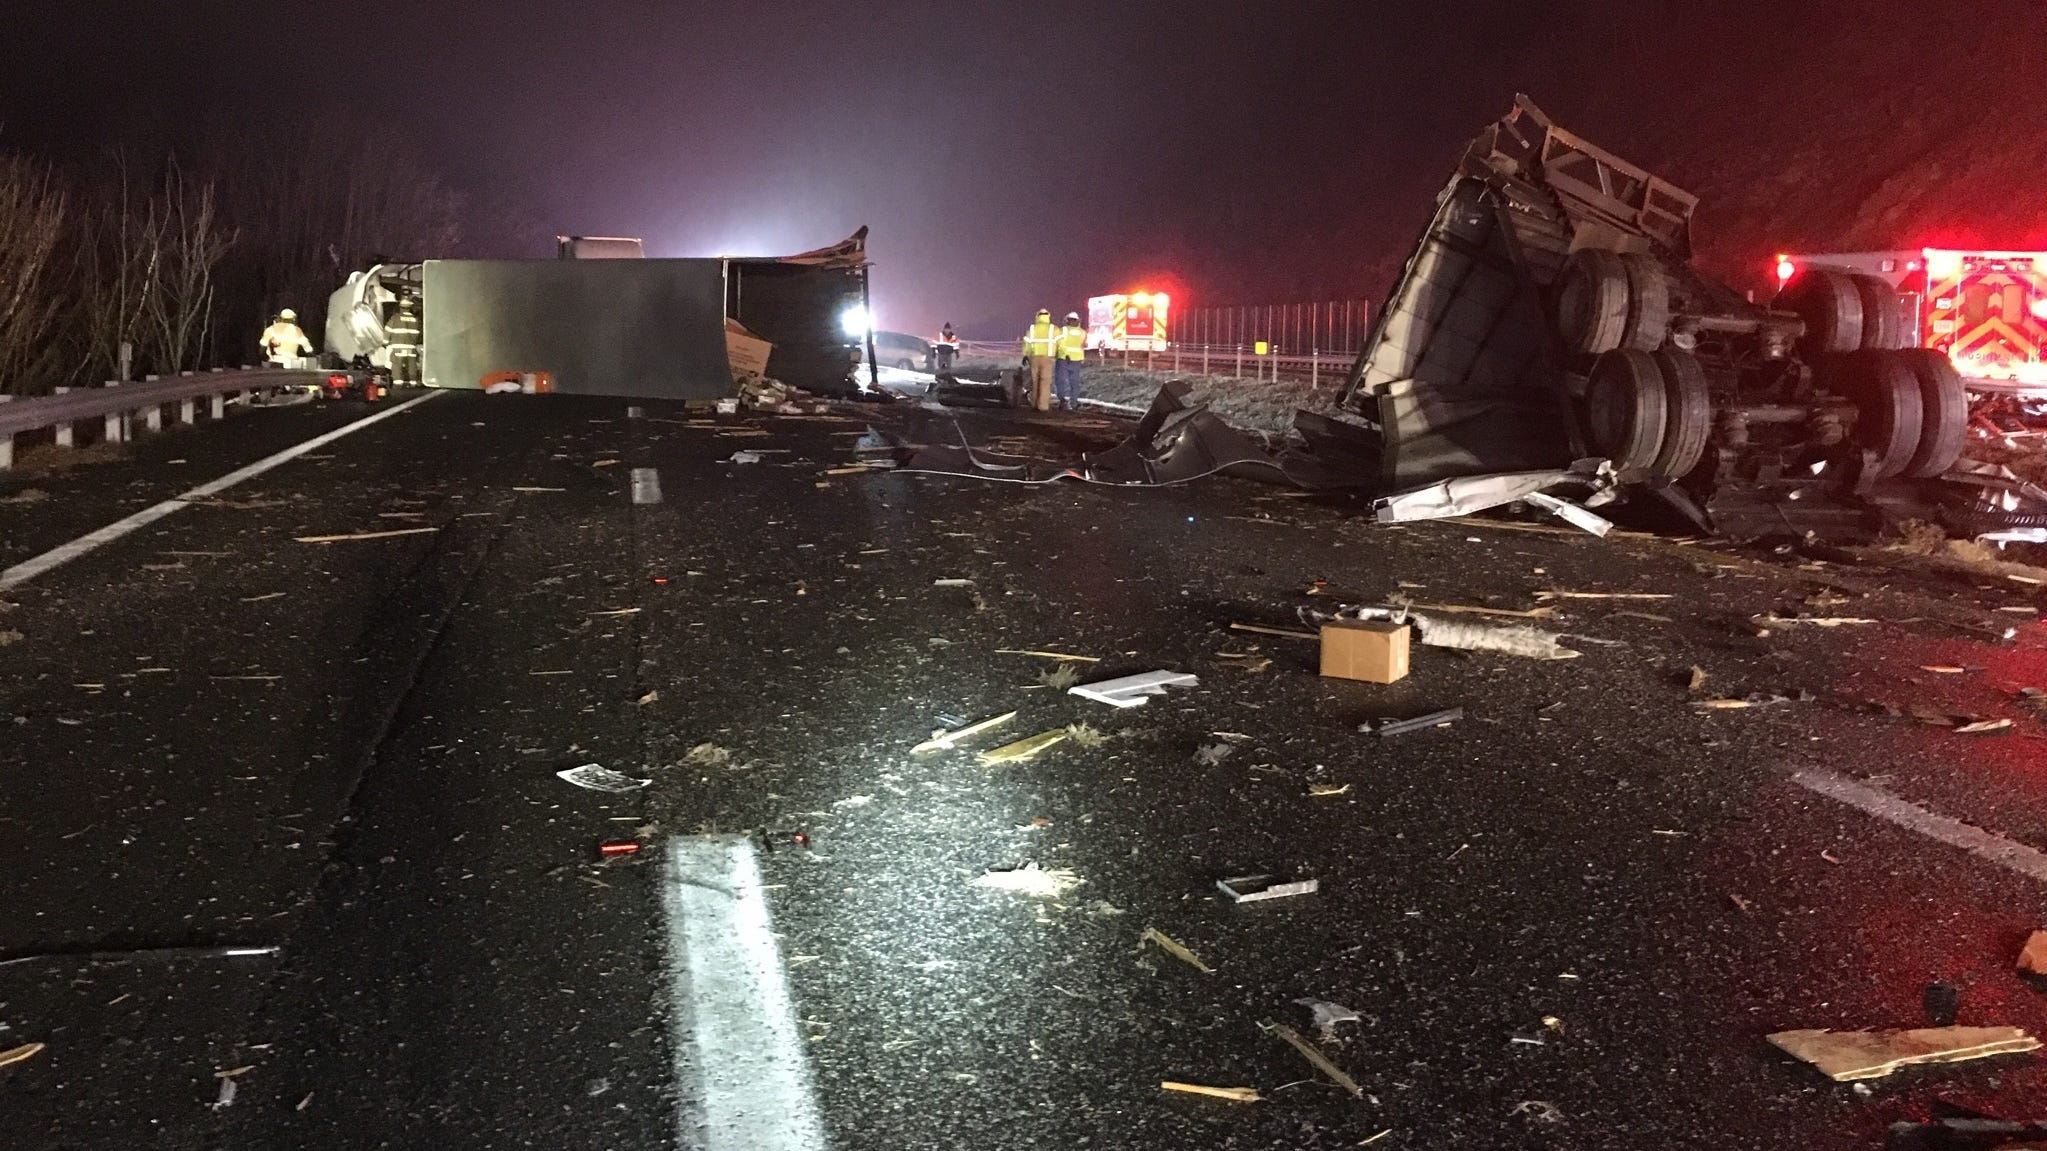 Tractor-trailer split in half by bus on I-64, 19 injured